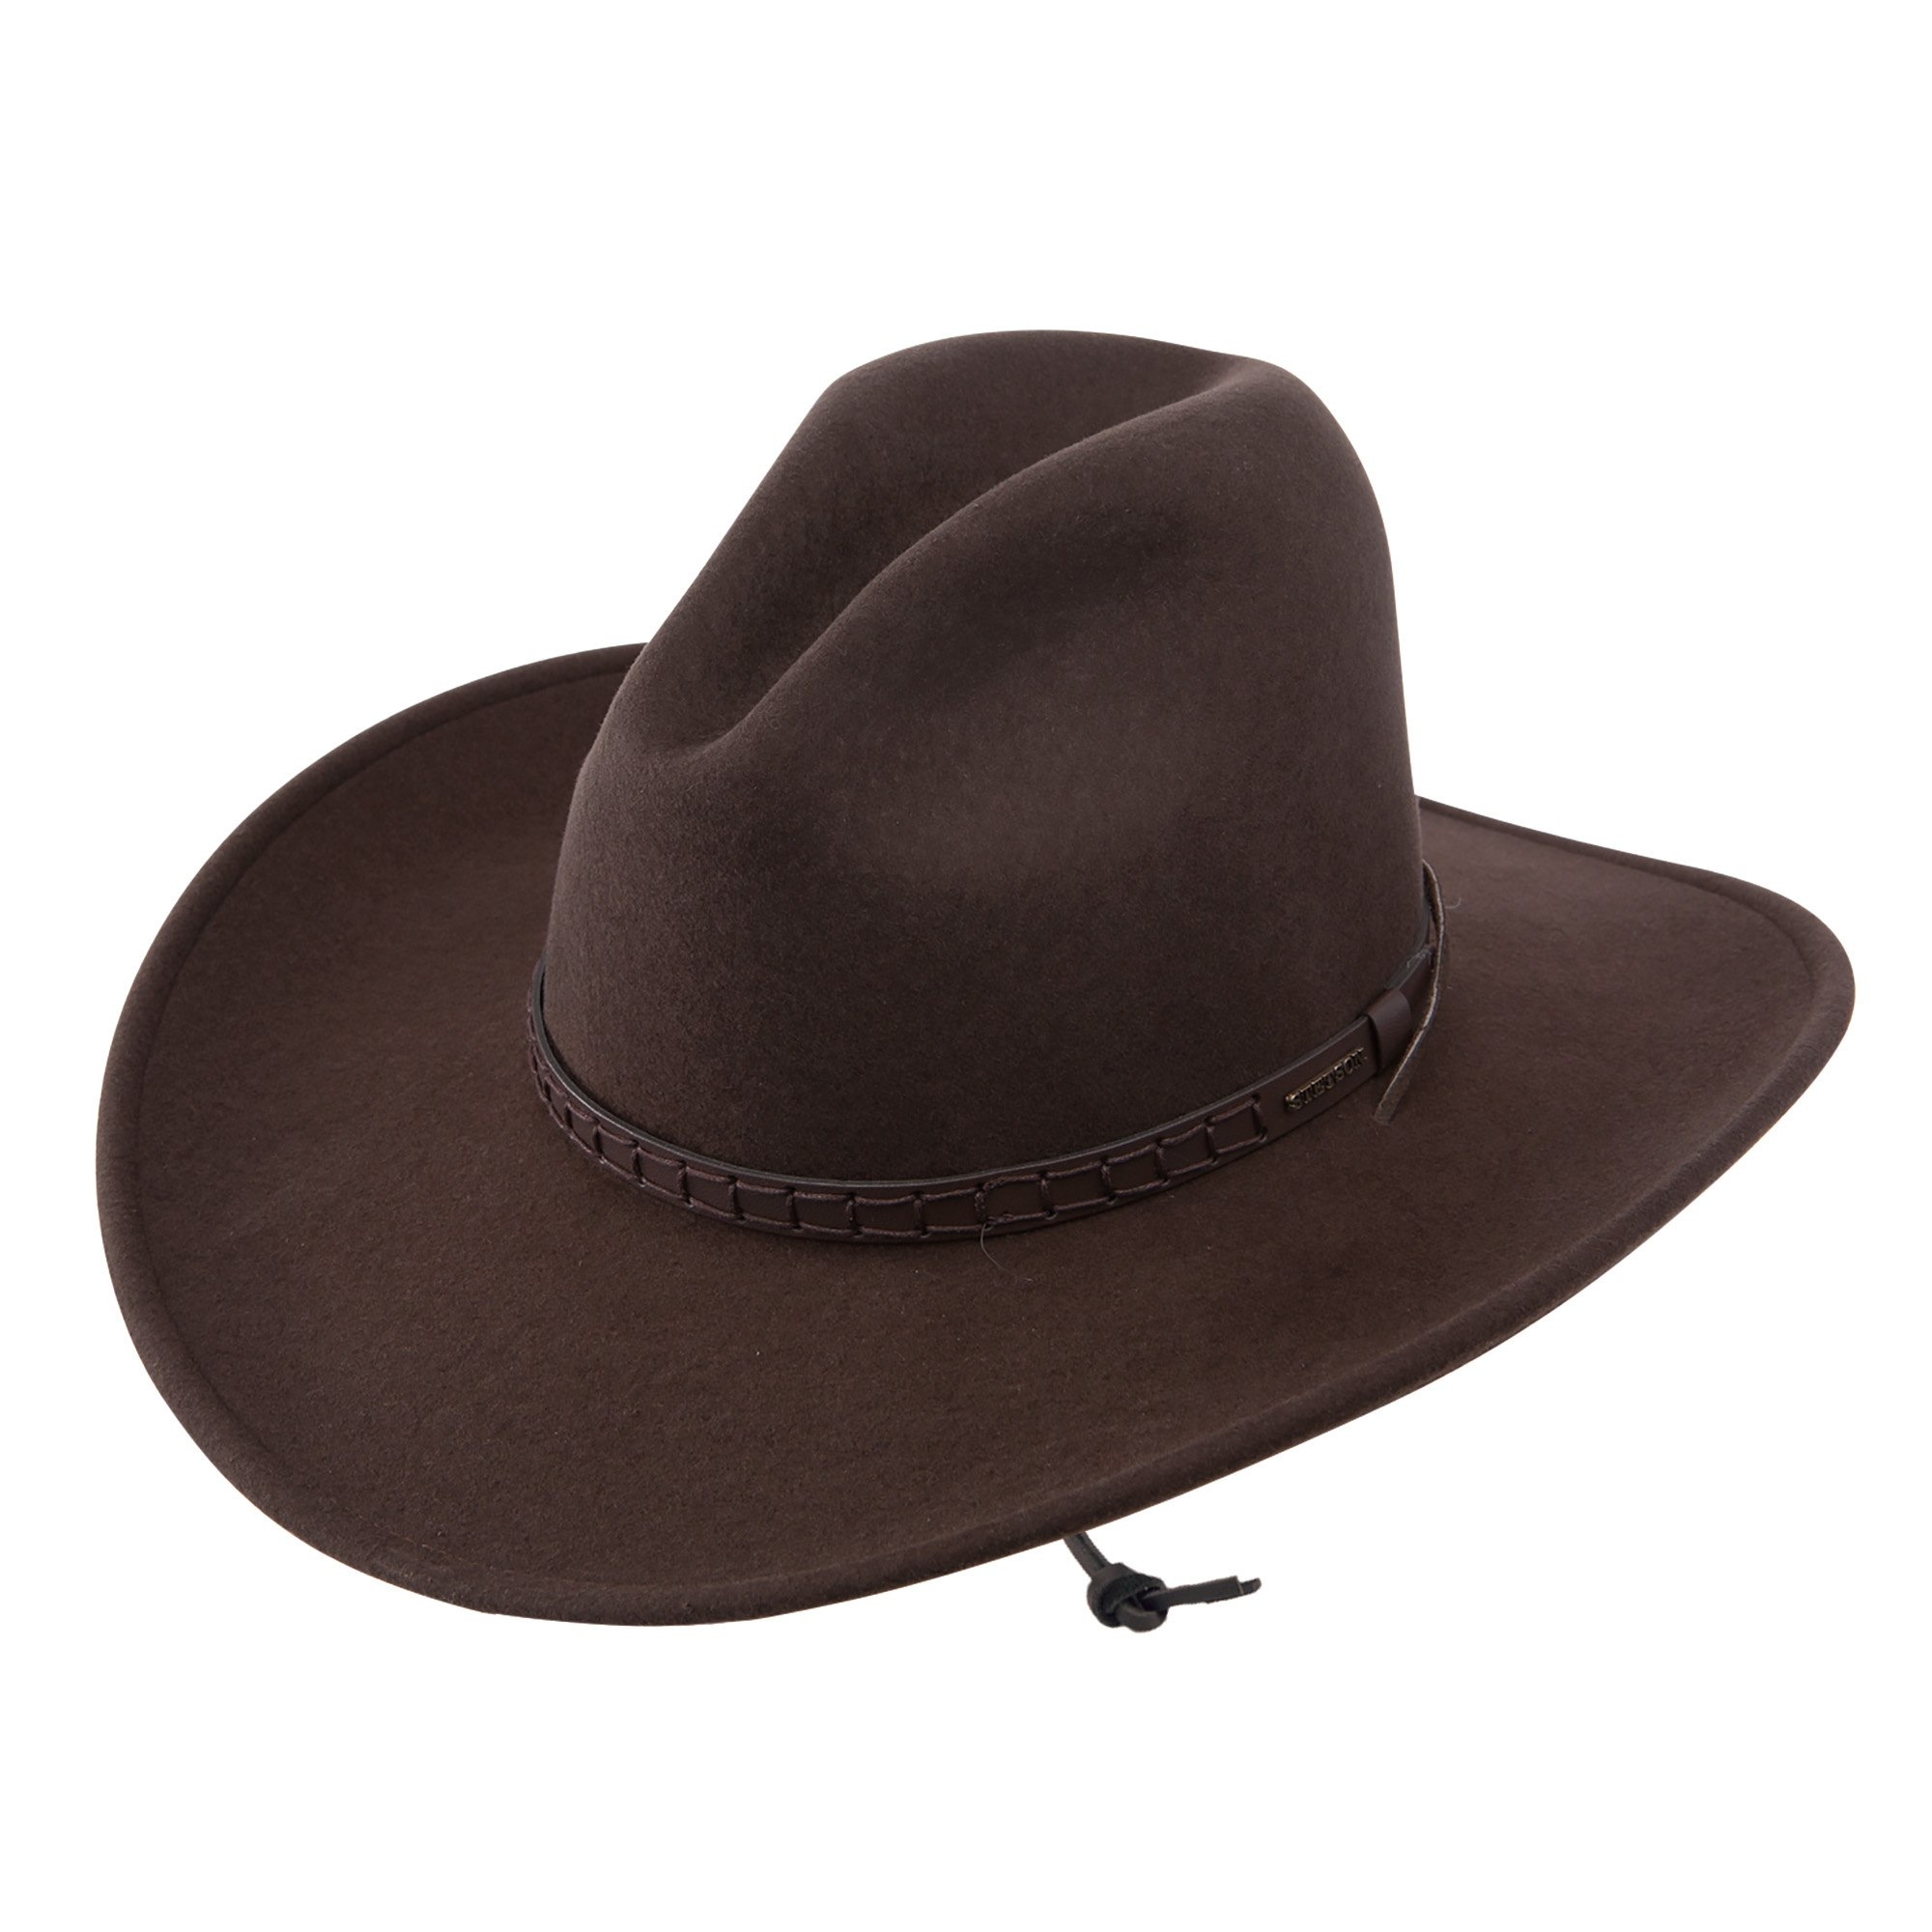 92e9340f60947 Pungo Ridge - Stetson Cross Creek Crushable Wool Hat - Mink